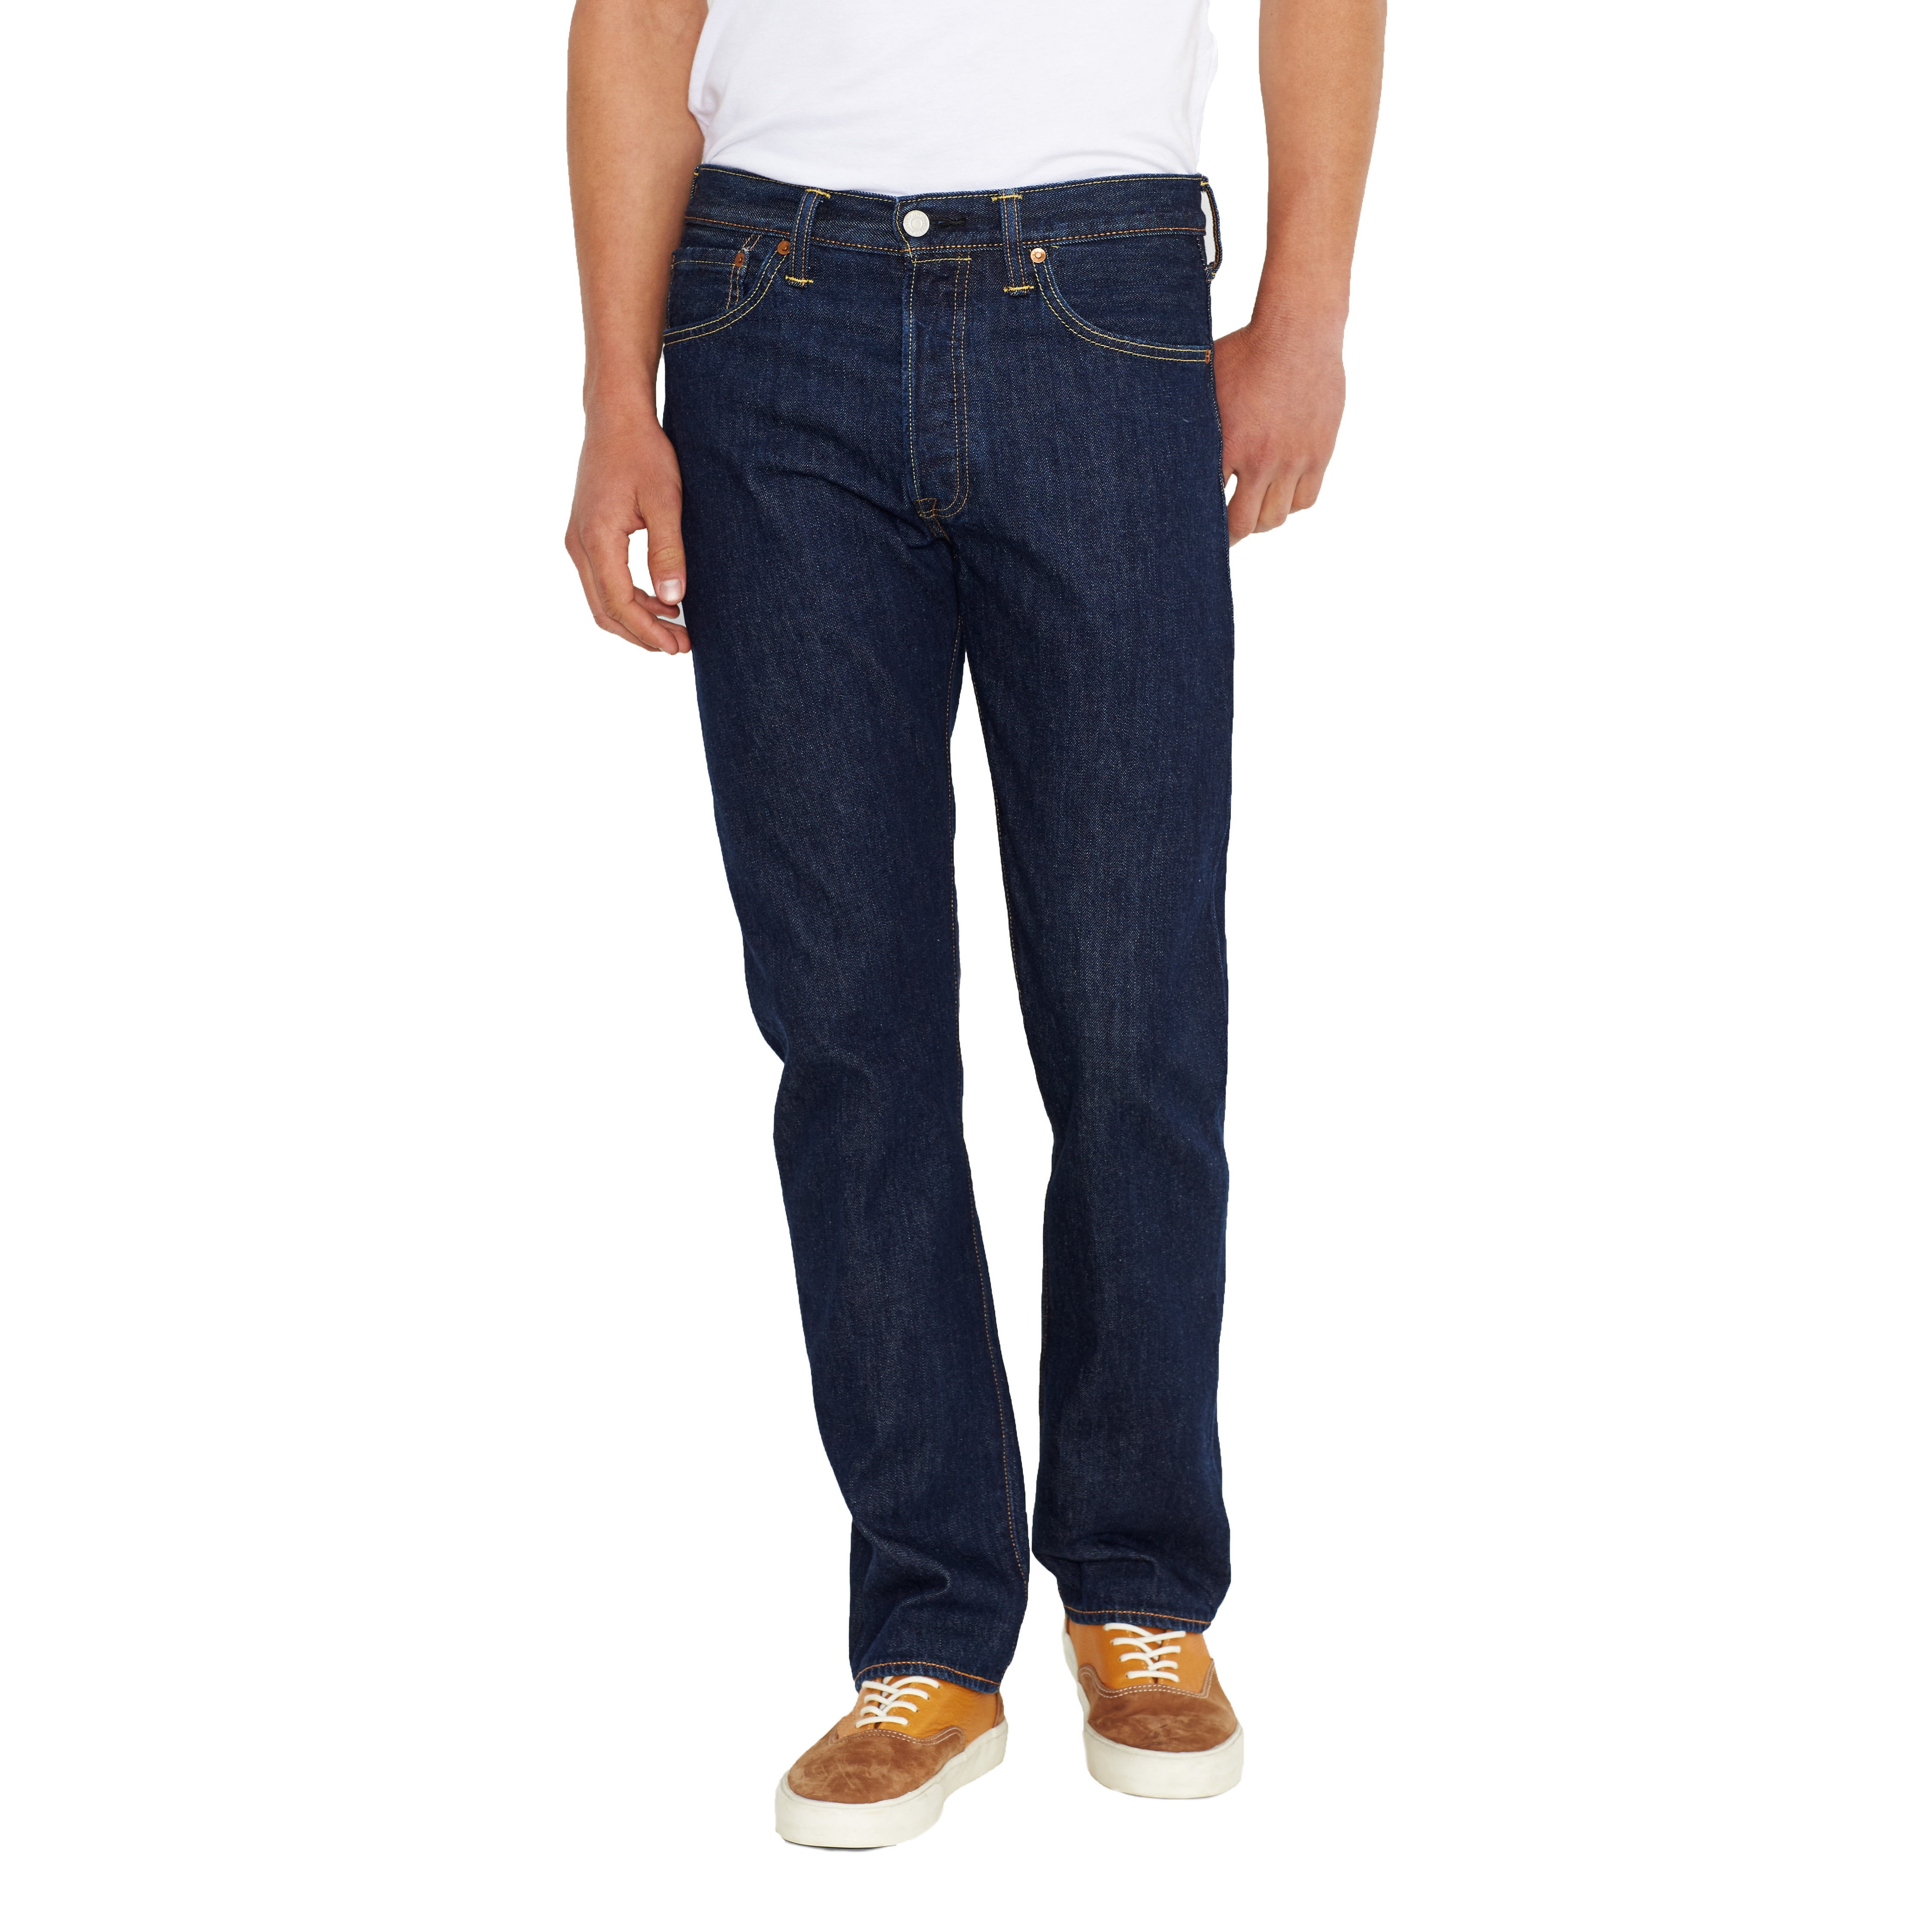 501 Original Fit Mens Jeans, Blue (Onewash), 32W x 32L Levi's